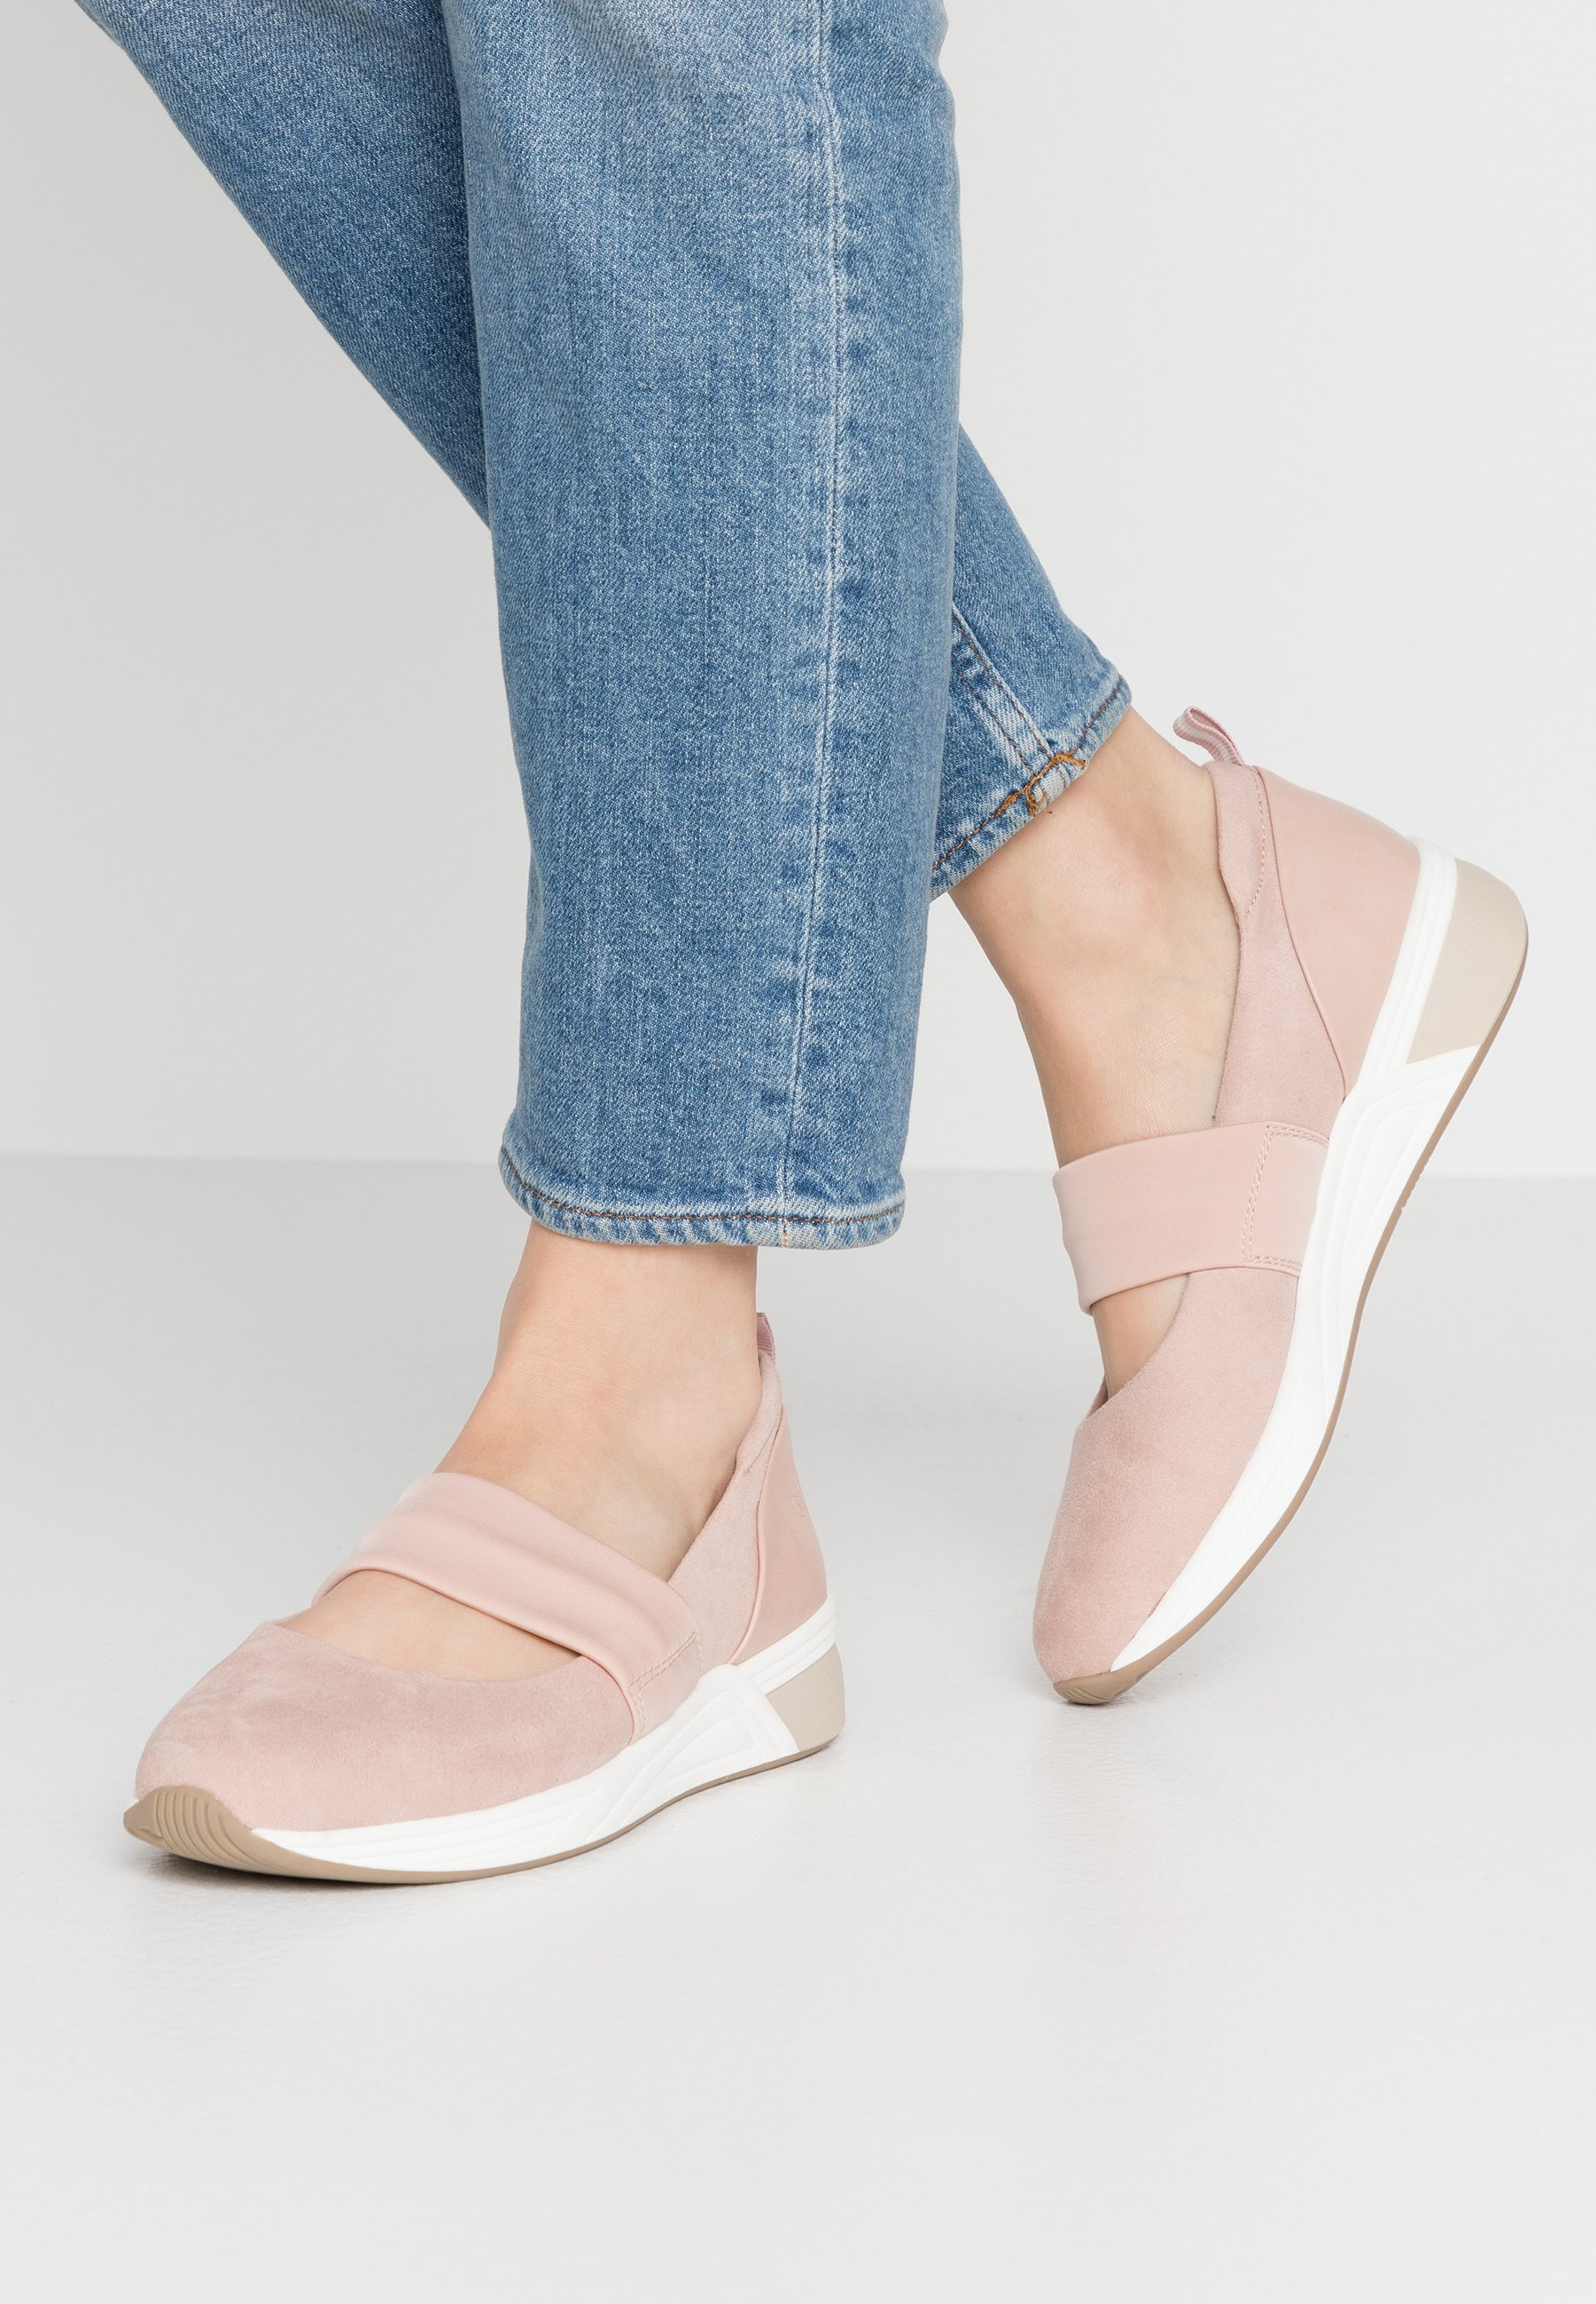 LOVE OUR PLANET by MARCO TOZZI Ankle strap ballet pumps - rose